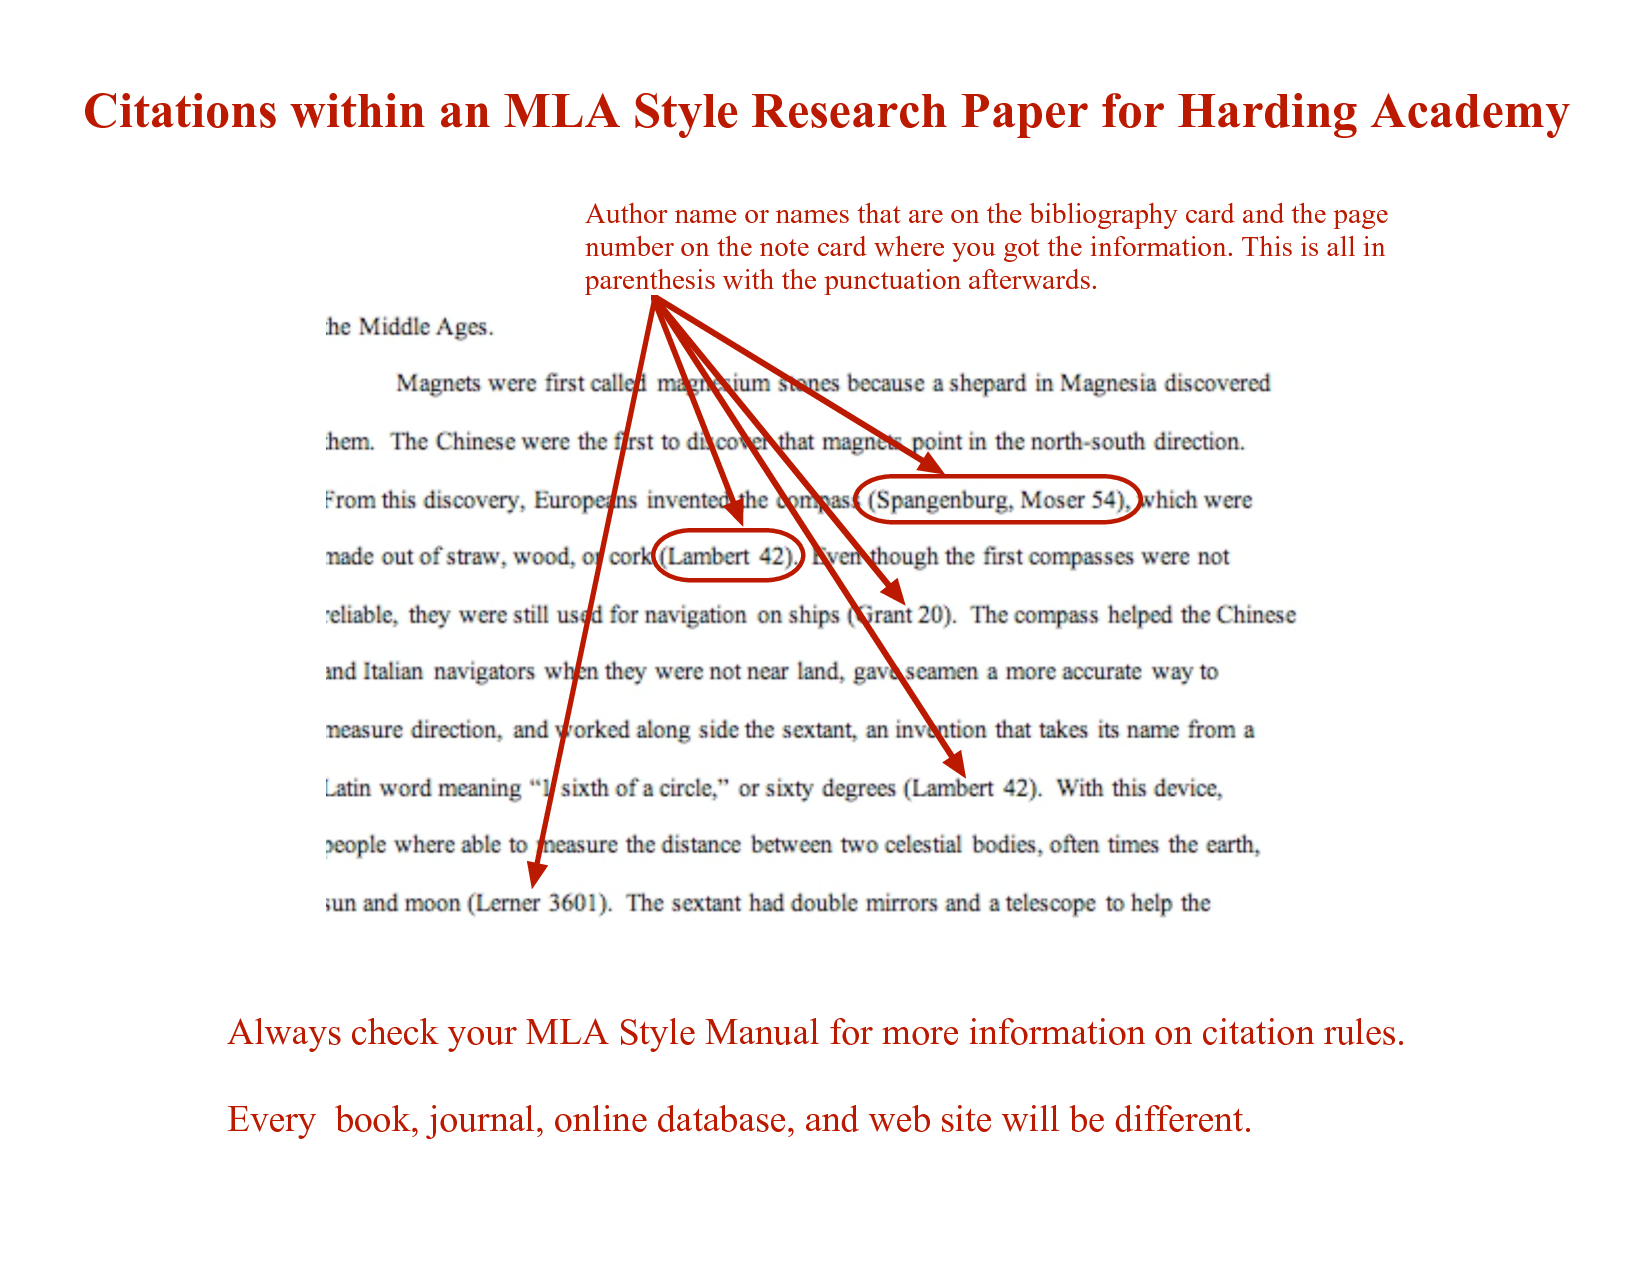 How to Insert an Image on an APA-Style Paper